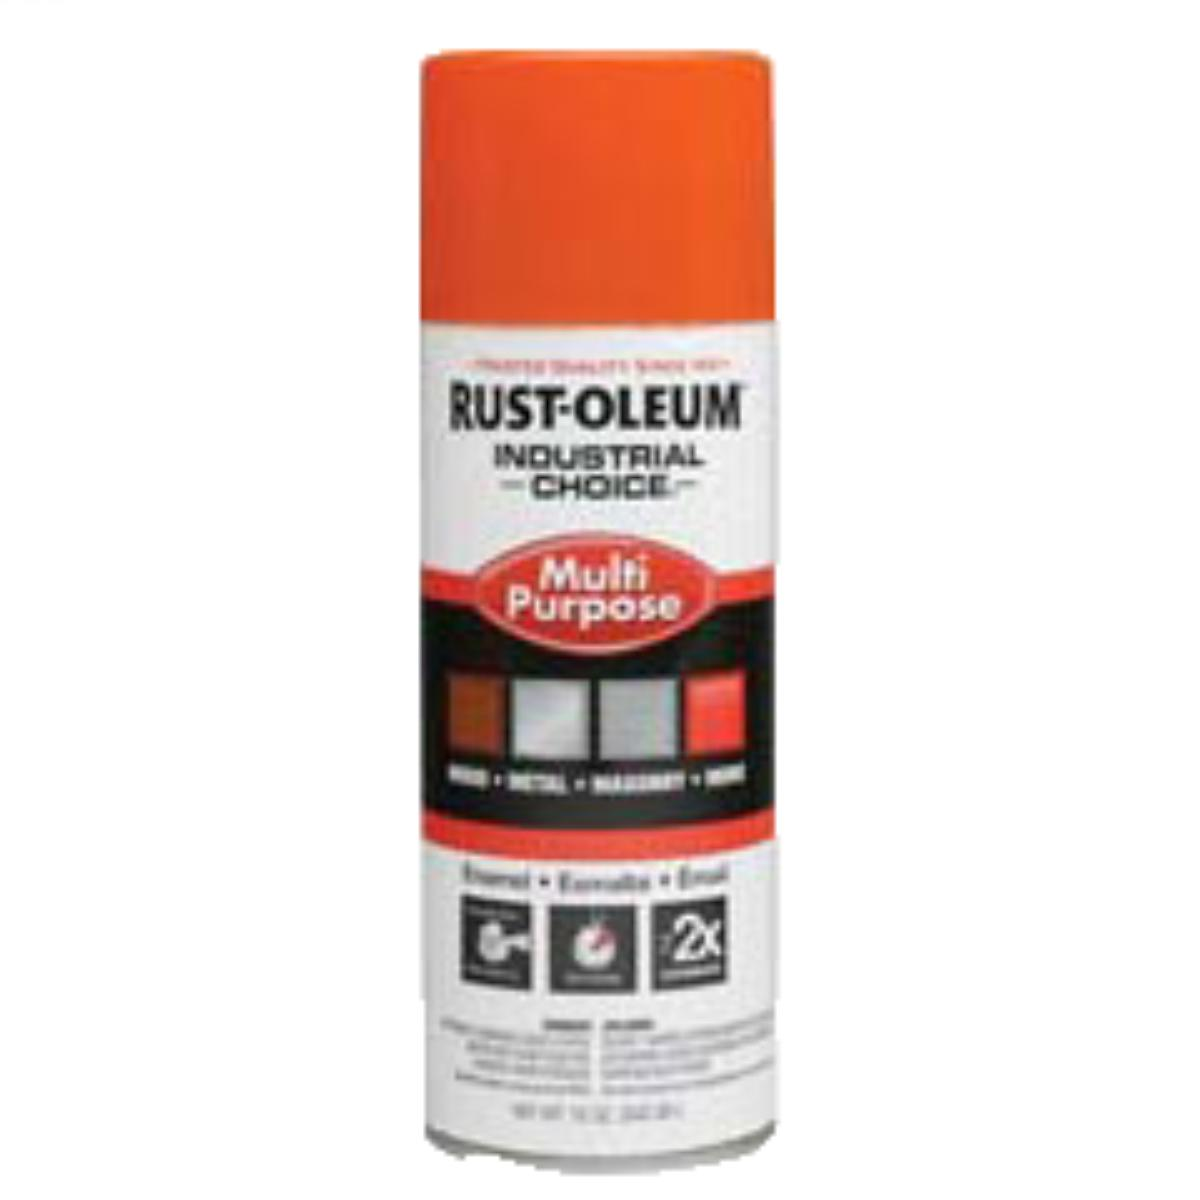 Rust-Oleum Spray Paint: OSHA Safety Orange, Gloss, 1 hr Dry Time, 12 to 15 sq ft, 12 fl oz